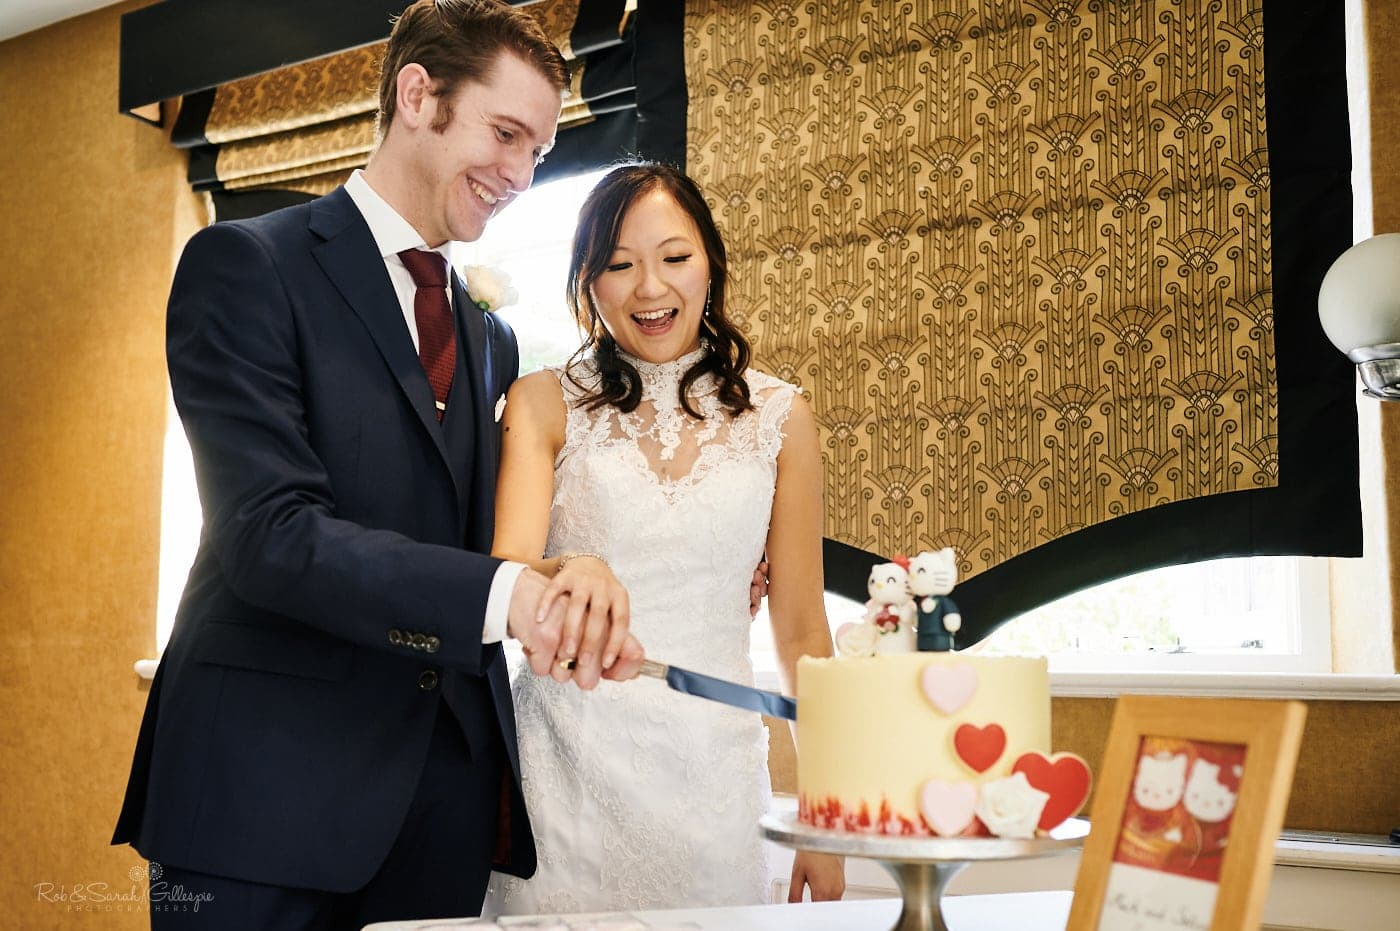 Bride and groom cut wedding cake at Mallory Court small wedding